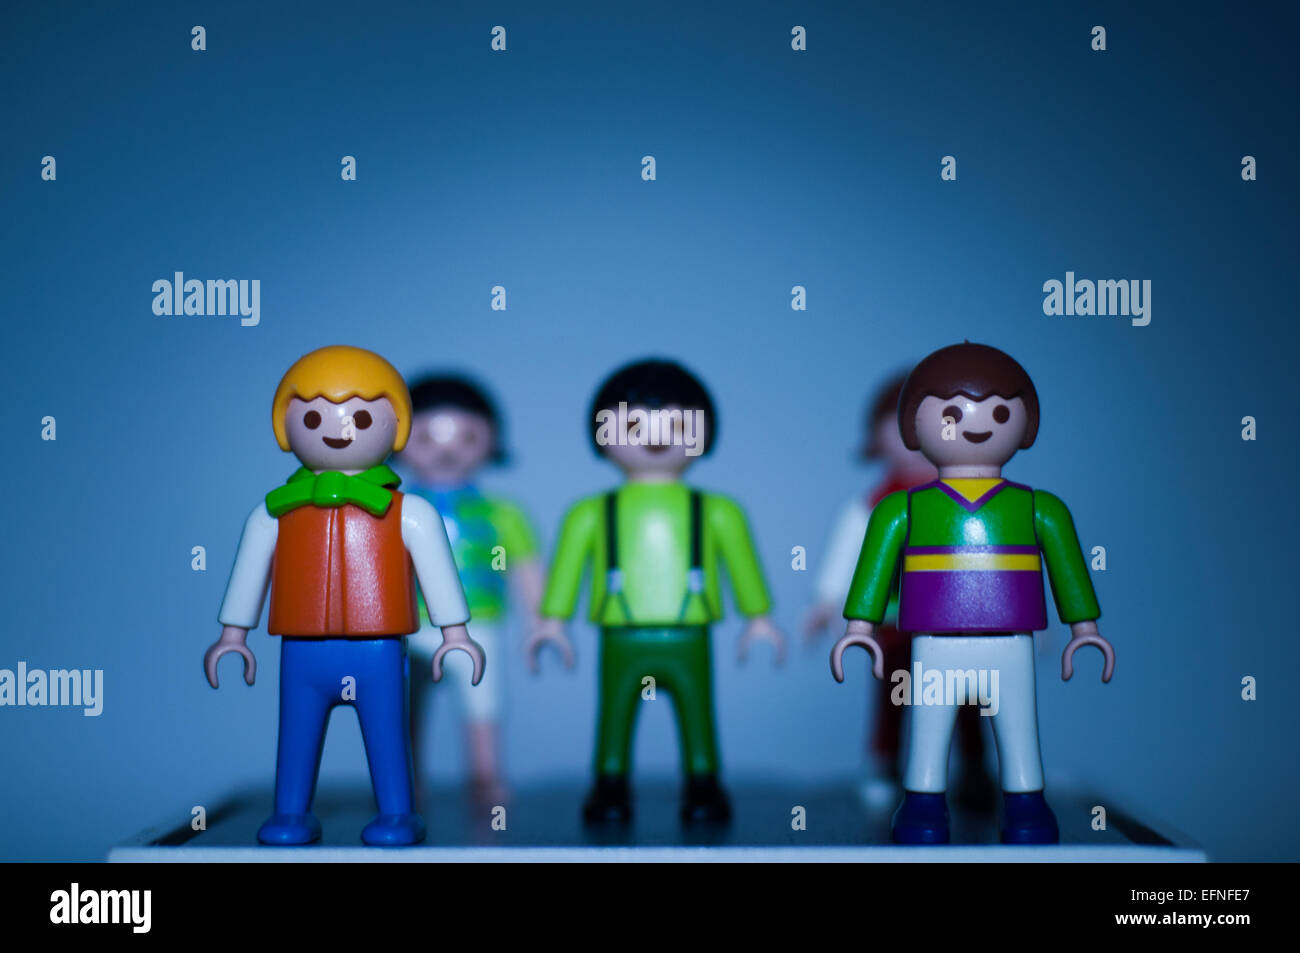 Group of Playmobil toys with a blue background - Stock Image